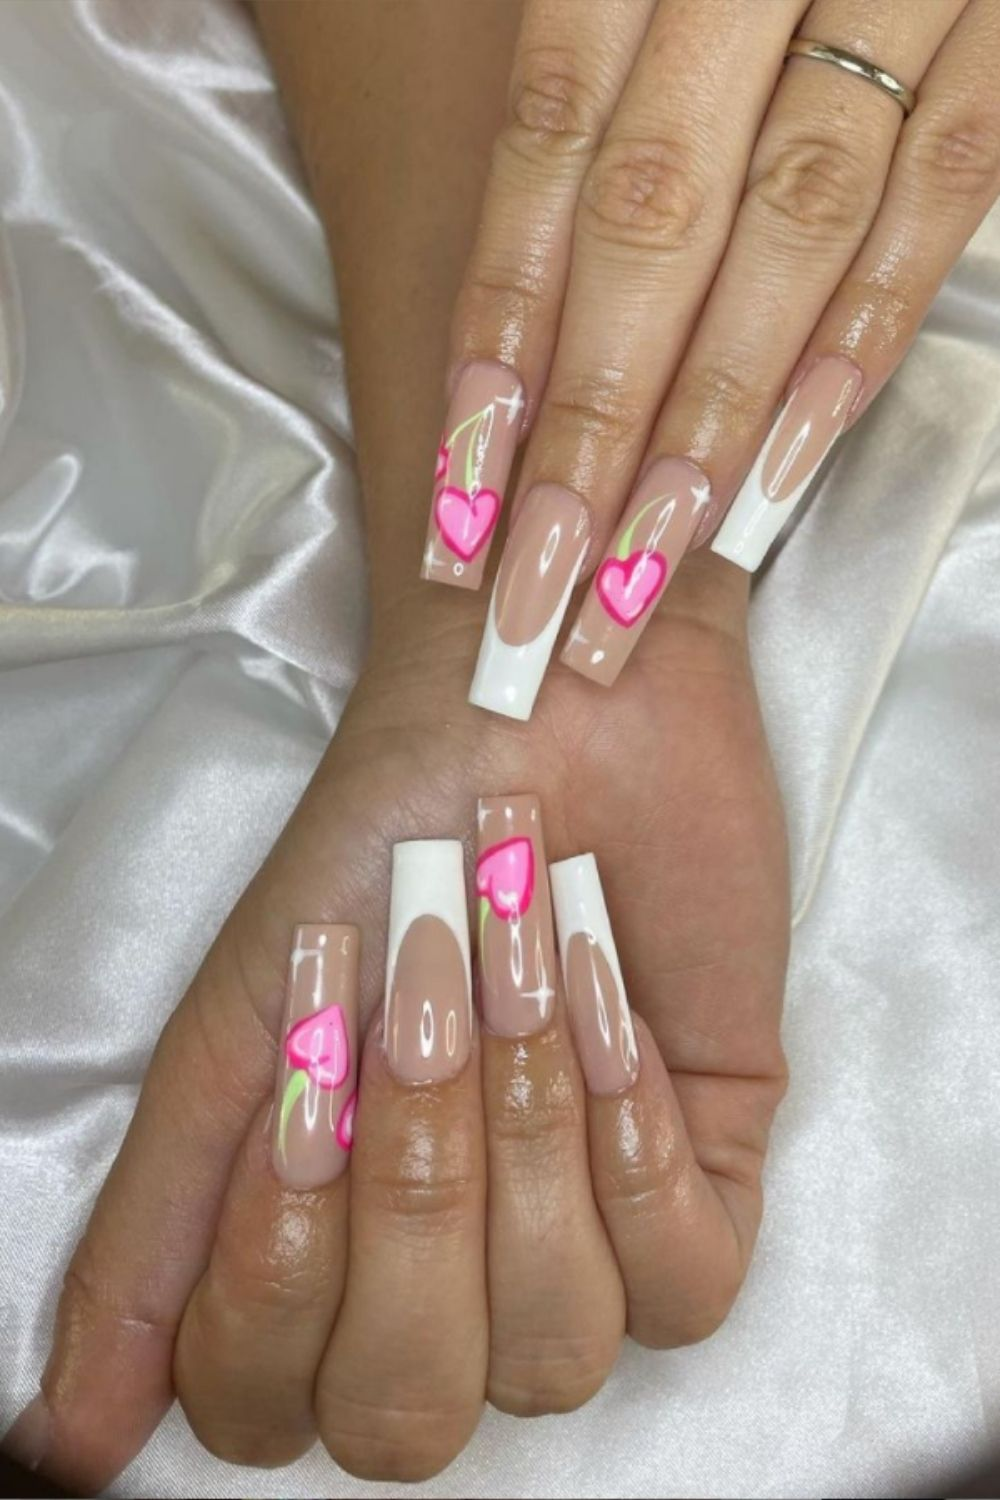 White tip coffin nail with heart